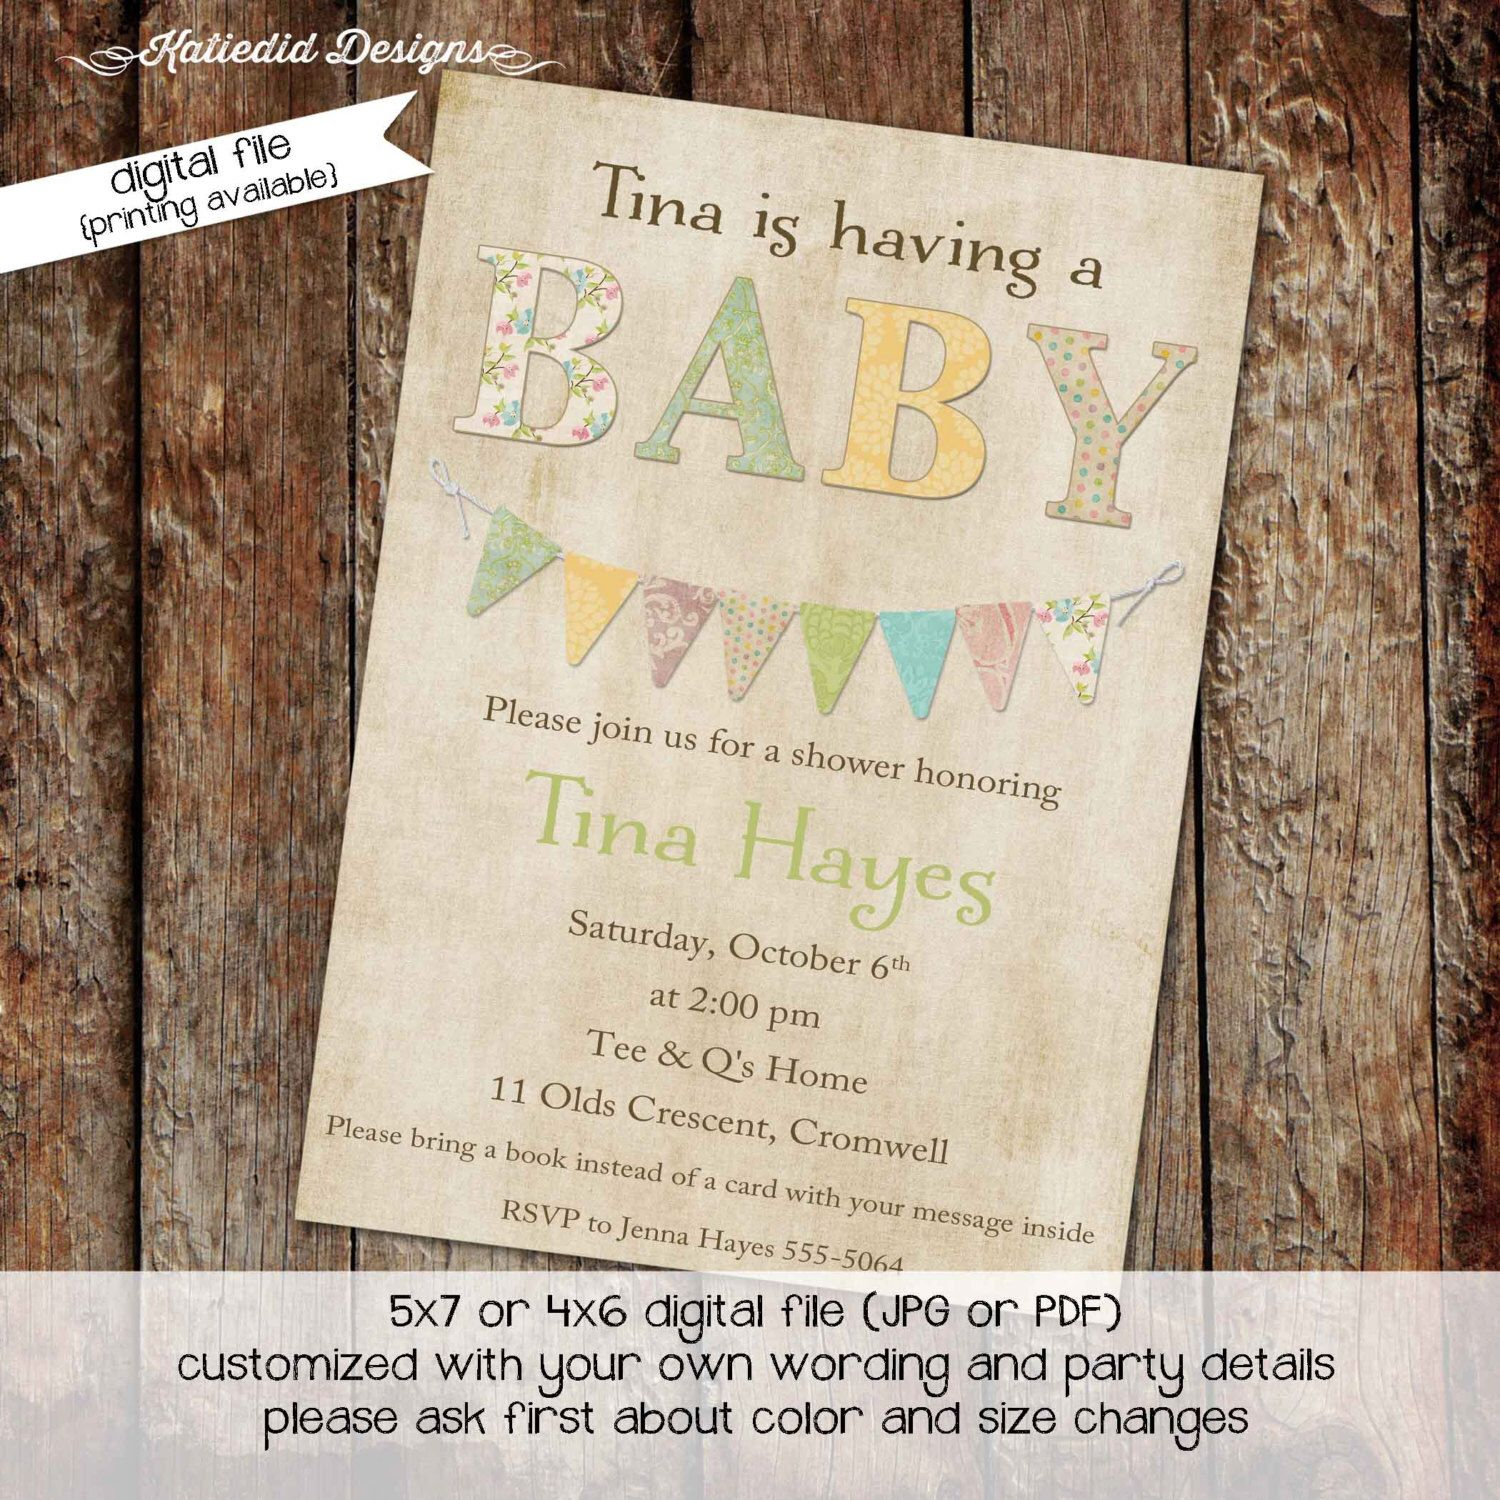 gender reveal invitation gender neutral baby sprinkle high tea shower bring a book library bunting banner (item 145) shabby chic invitation by katiedidesigns on Etsy https://www.etsy.com/listing/75938292/gender-reveal-invitation-gender-neutral